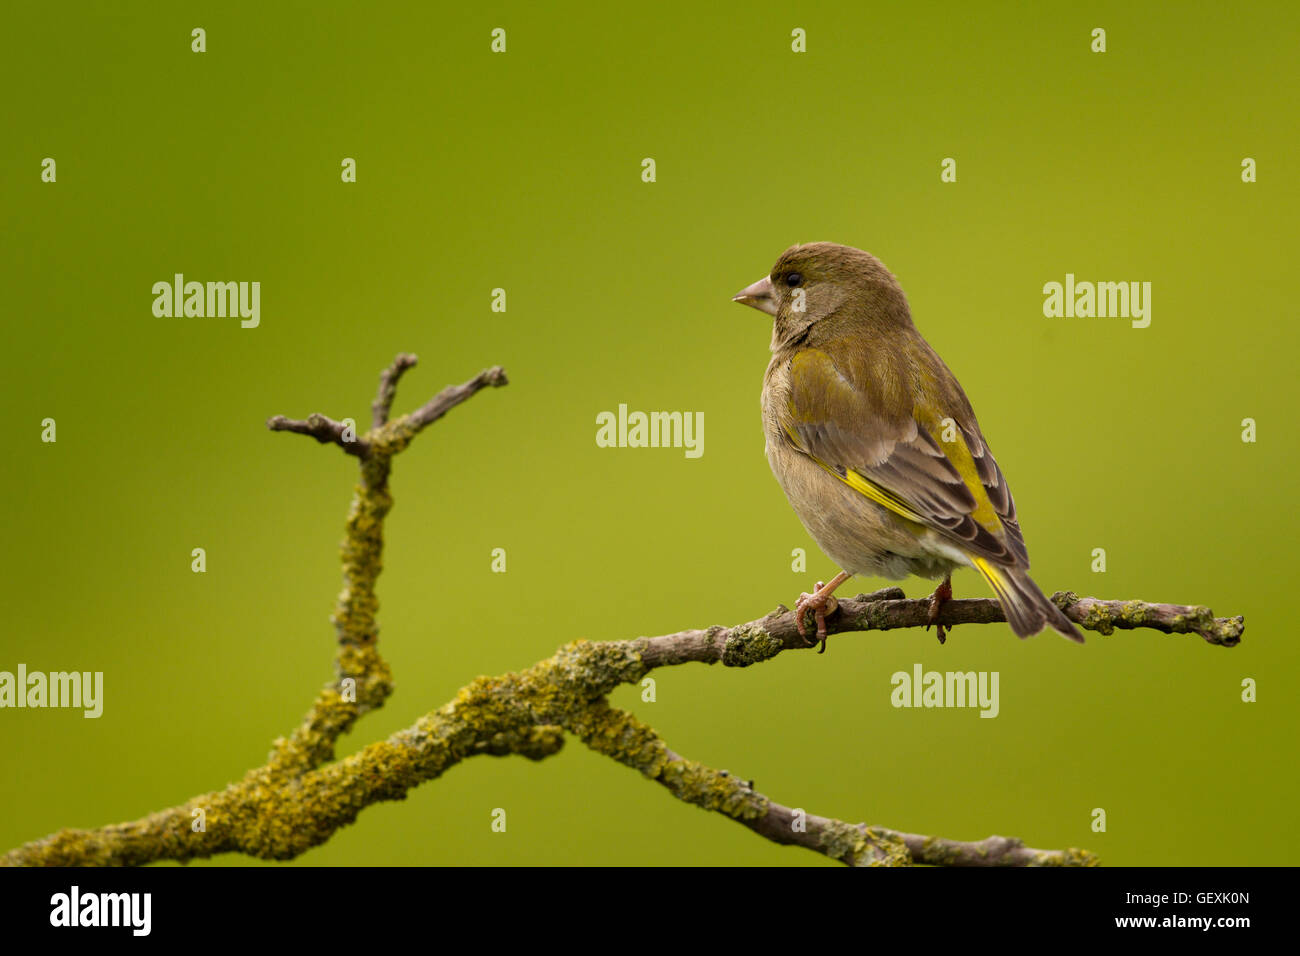 Greenfinch - Stock Image